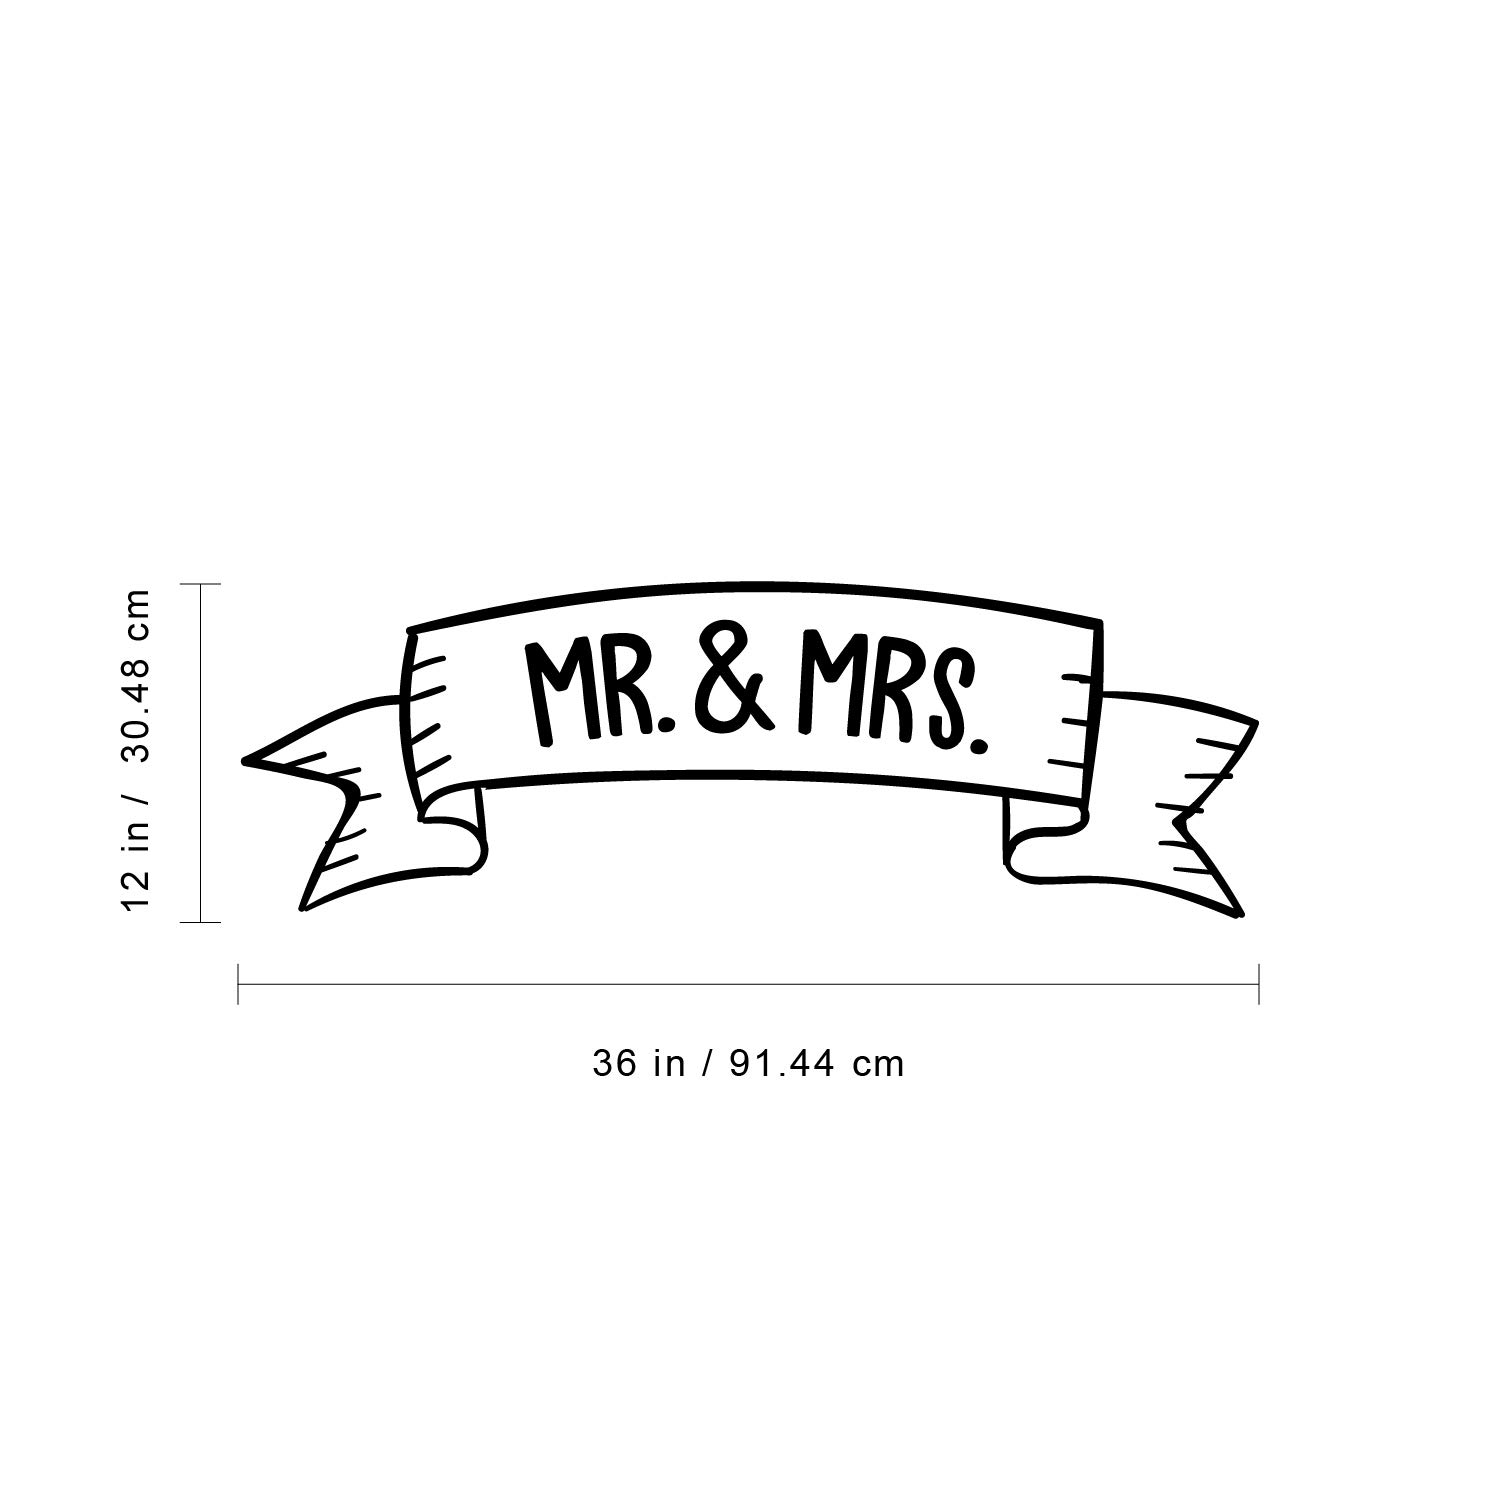 Couples Wedding Reception Home Adhesive Sticker Mr /& Mrs 12 x 36, White Marriage Wedlock of Love Living Room Bedroom Apartment Decor Stickers 12 x 36 Vinyl Wall Art Decal